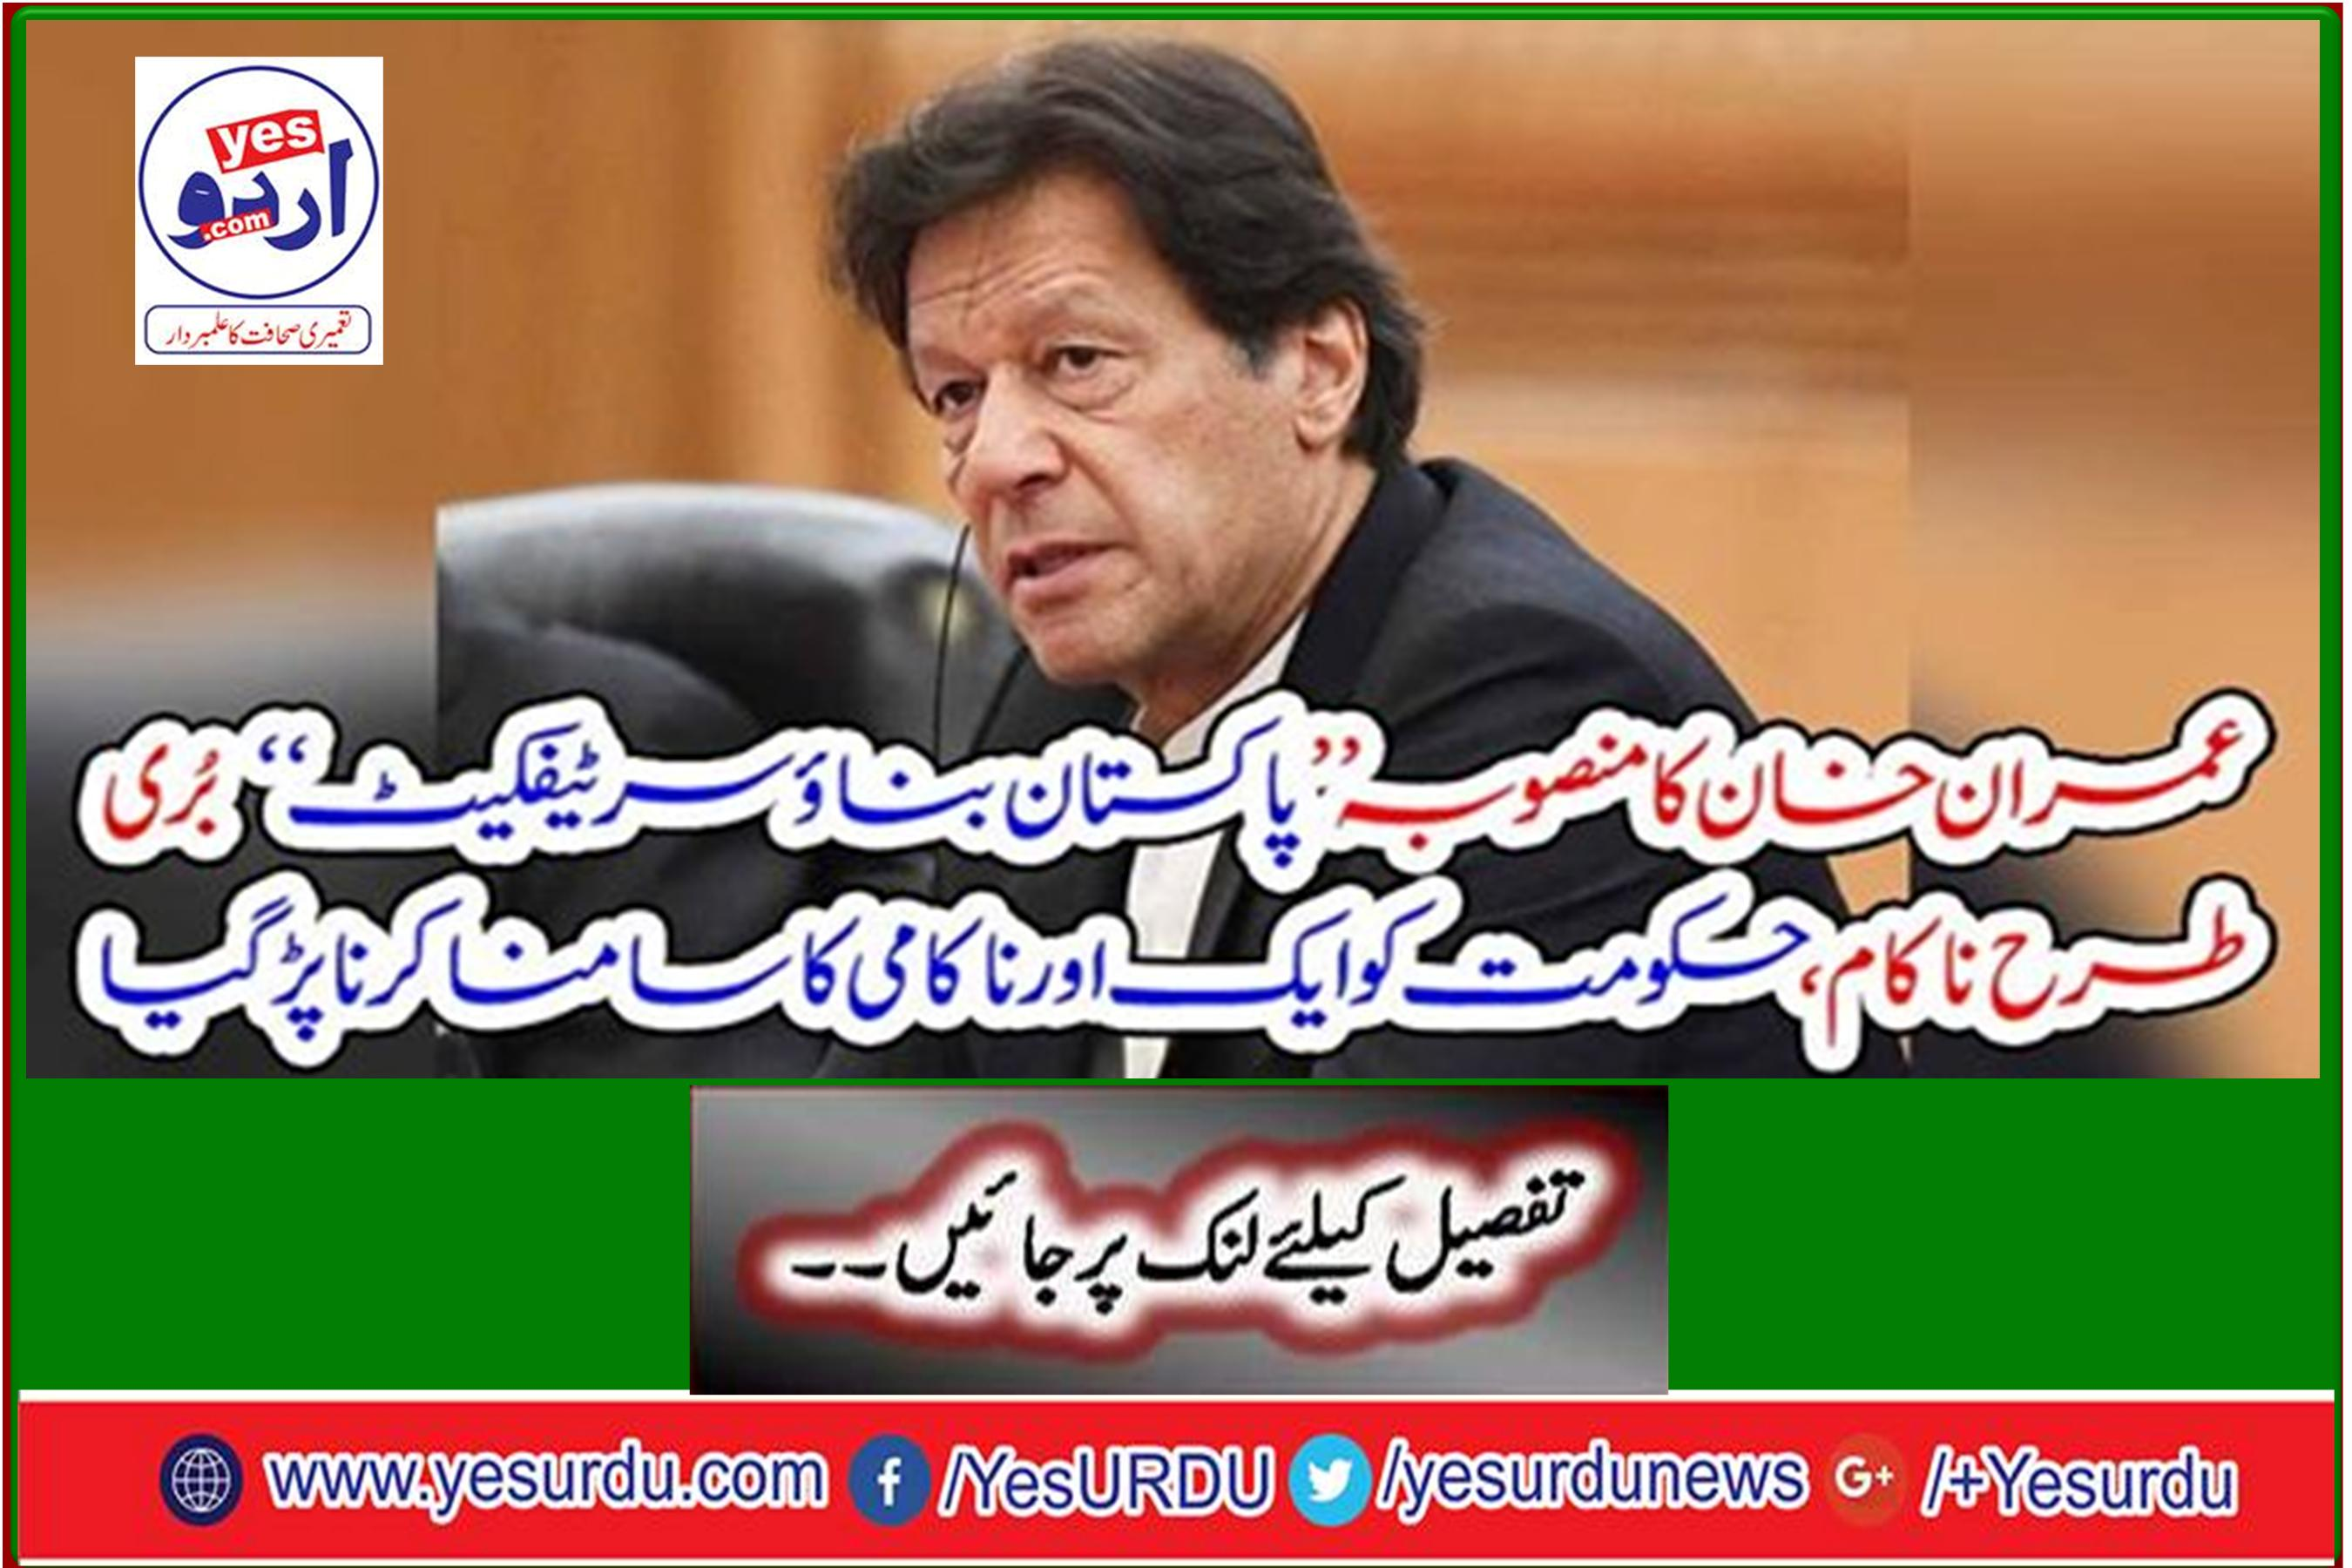 """Imran Khan's plan """"Pakistan Build Certificate"""" failed miserably, the government suffered another failure"""